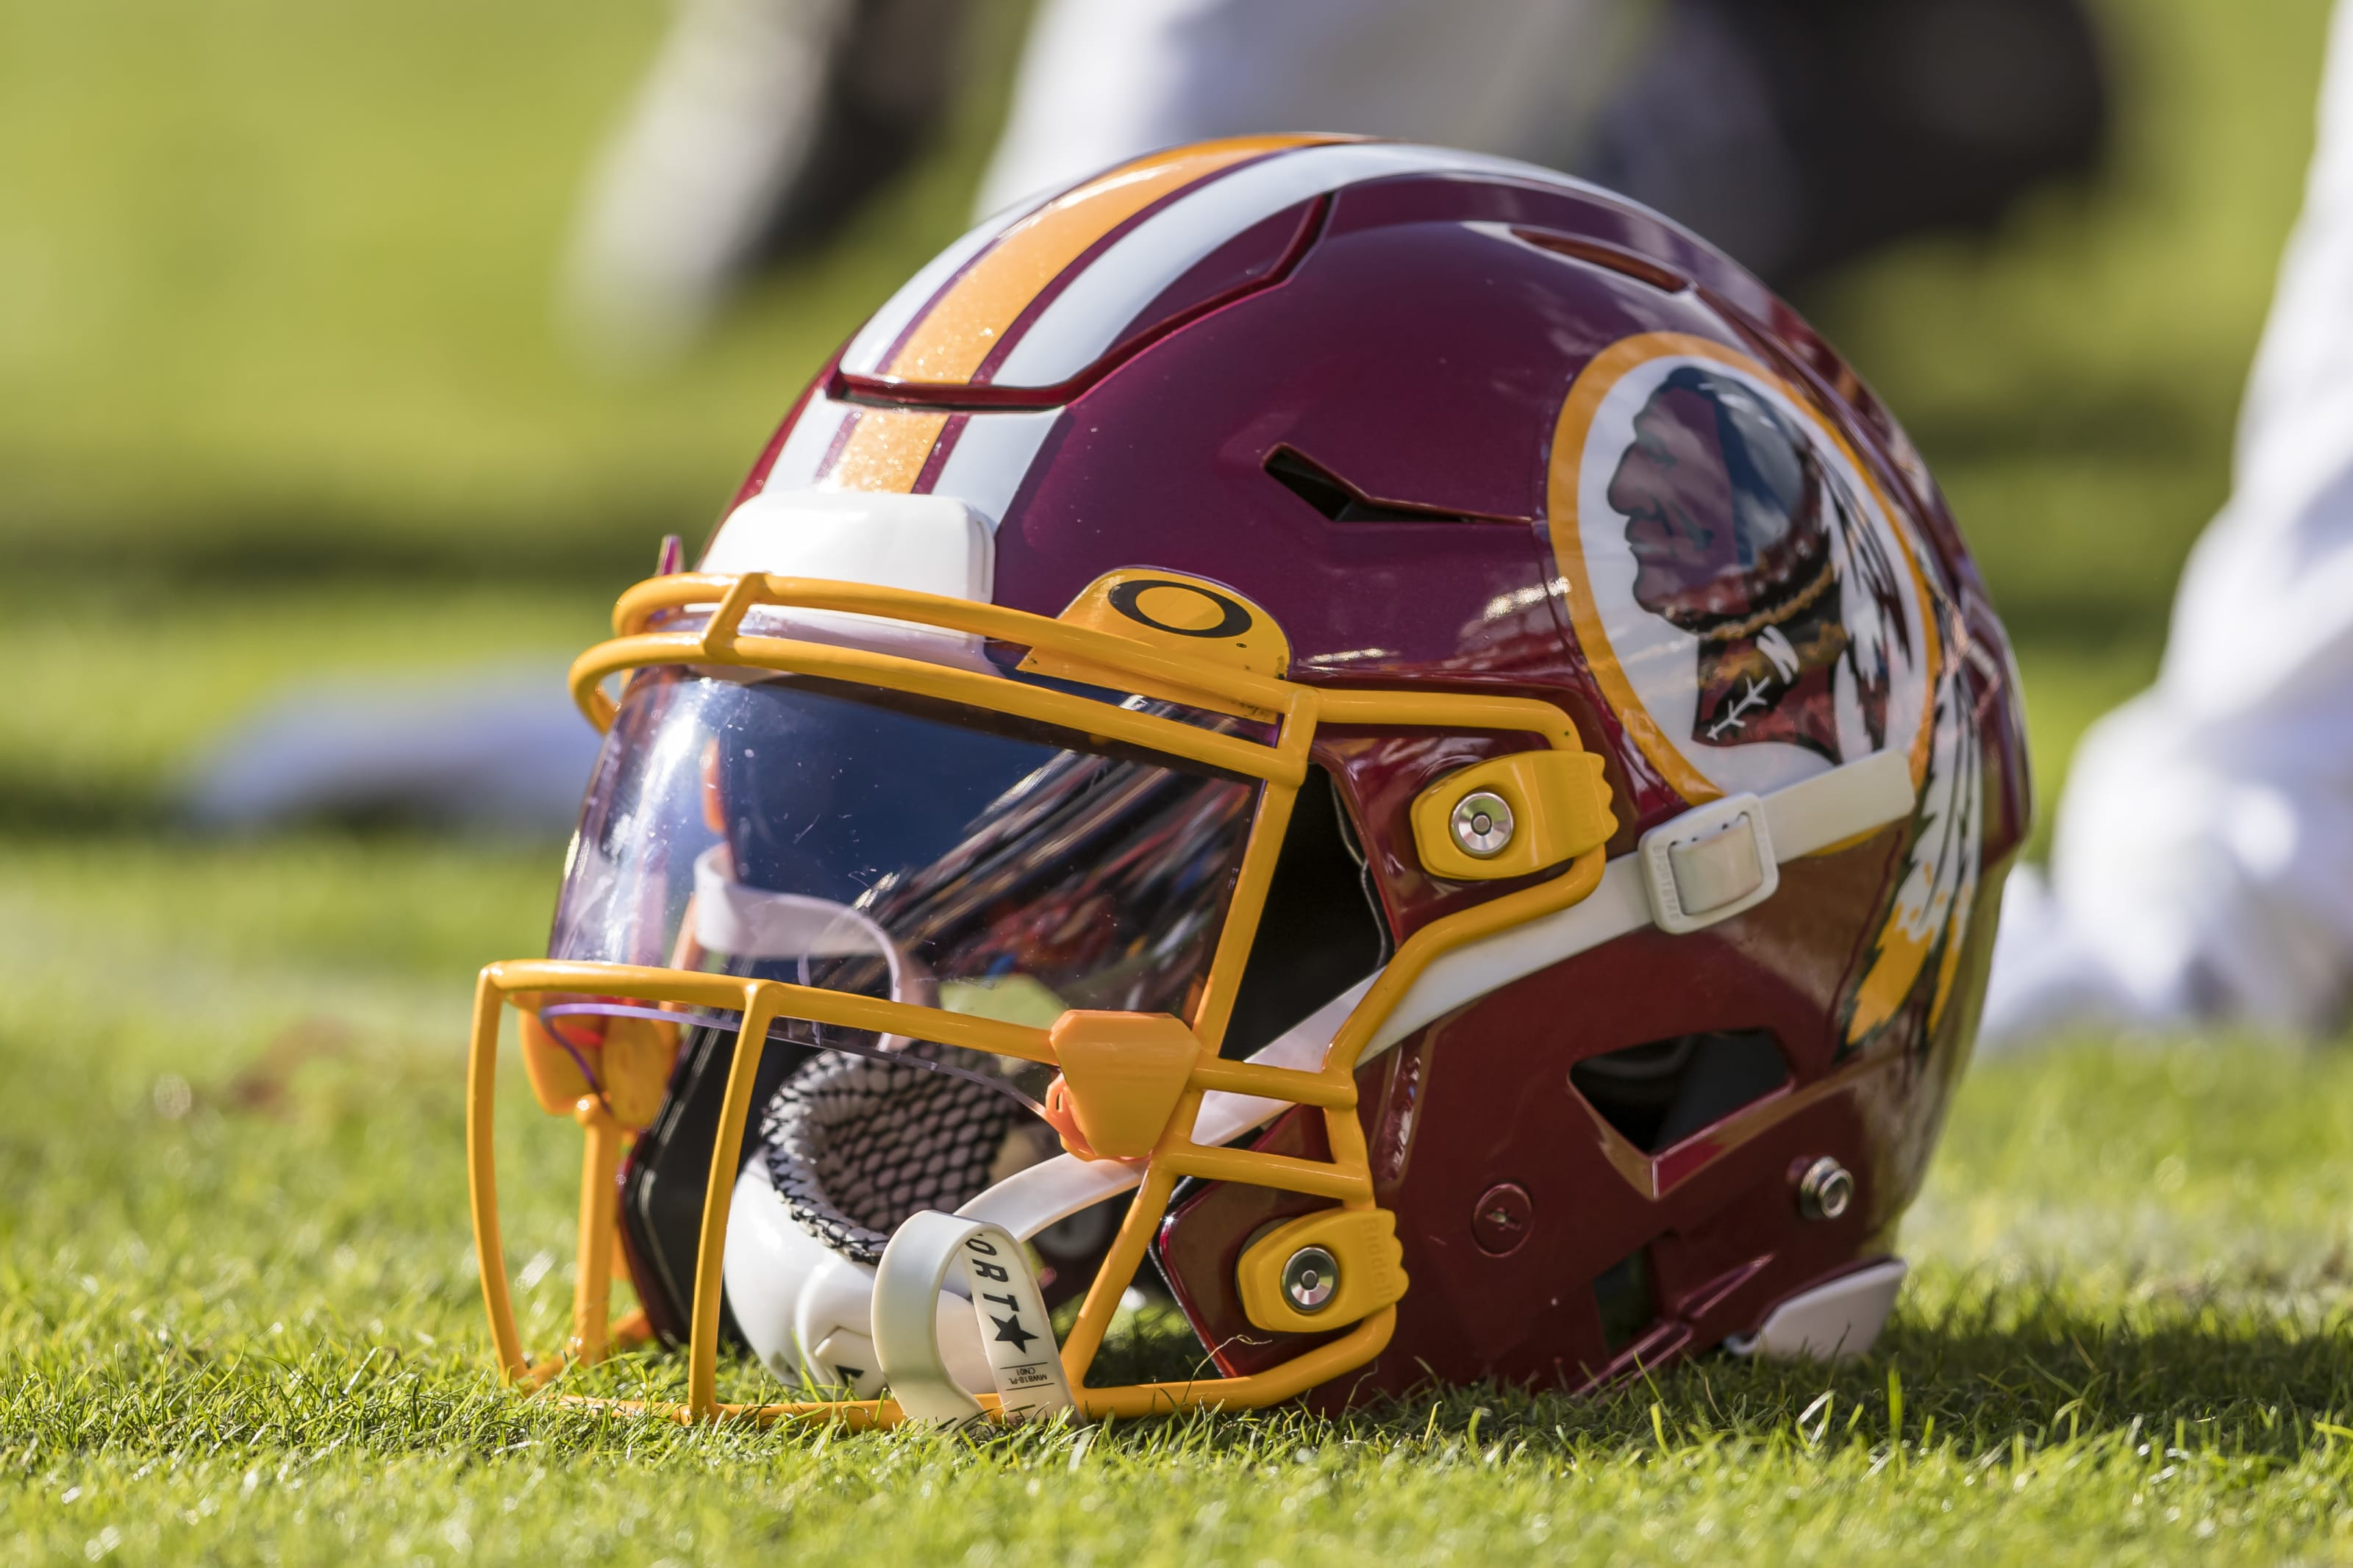 Nike Pulled All Redskins Gear From Their Website and FedEx Is Demanding The Team Change Its Name